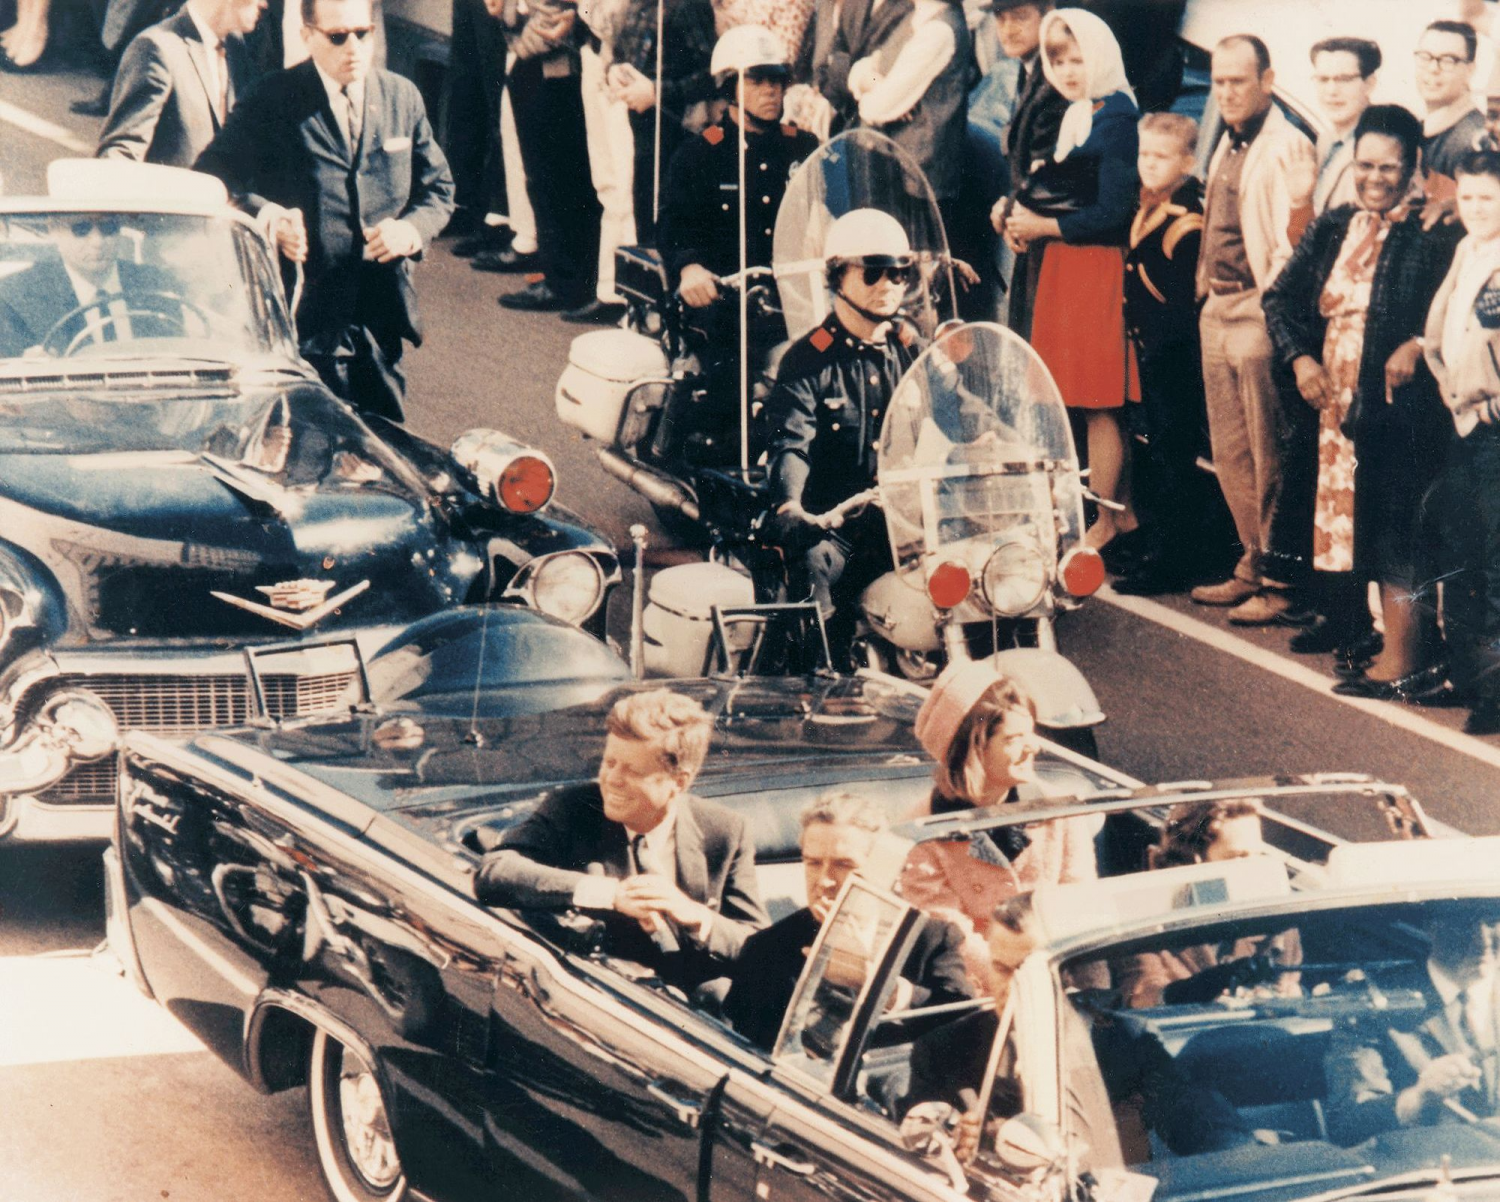 ... President Kennedy In The Limousine In Dallas, Texas, On Main Street,  Minutes Before ...